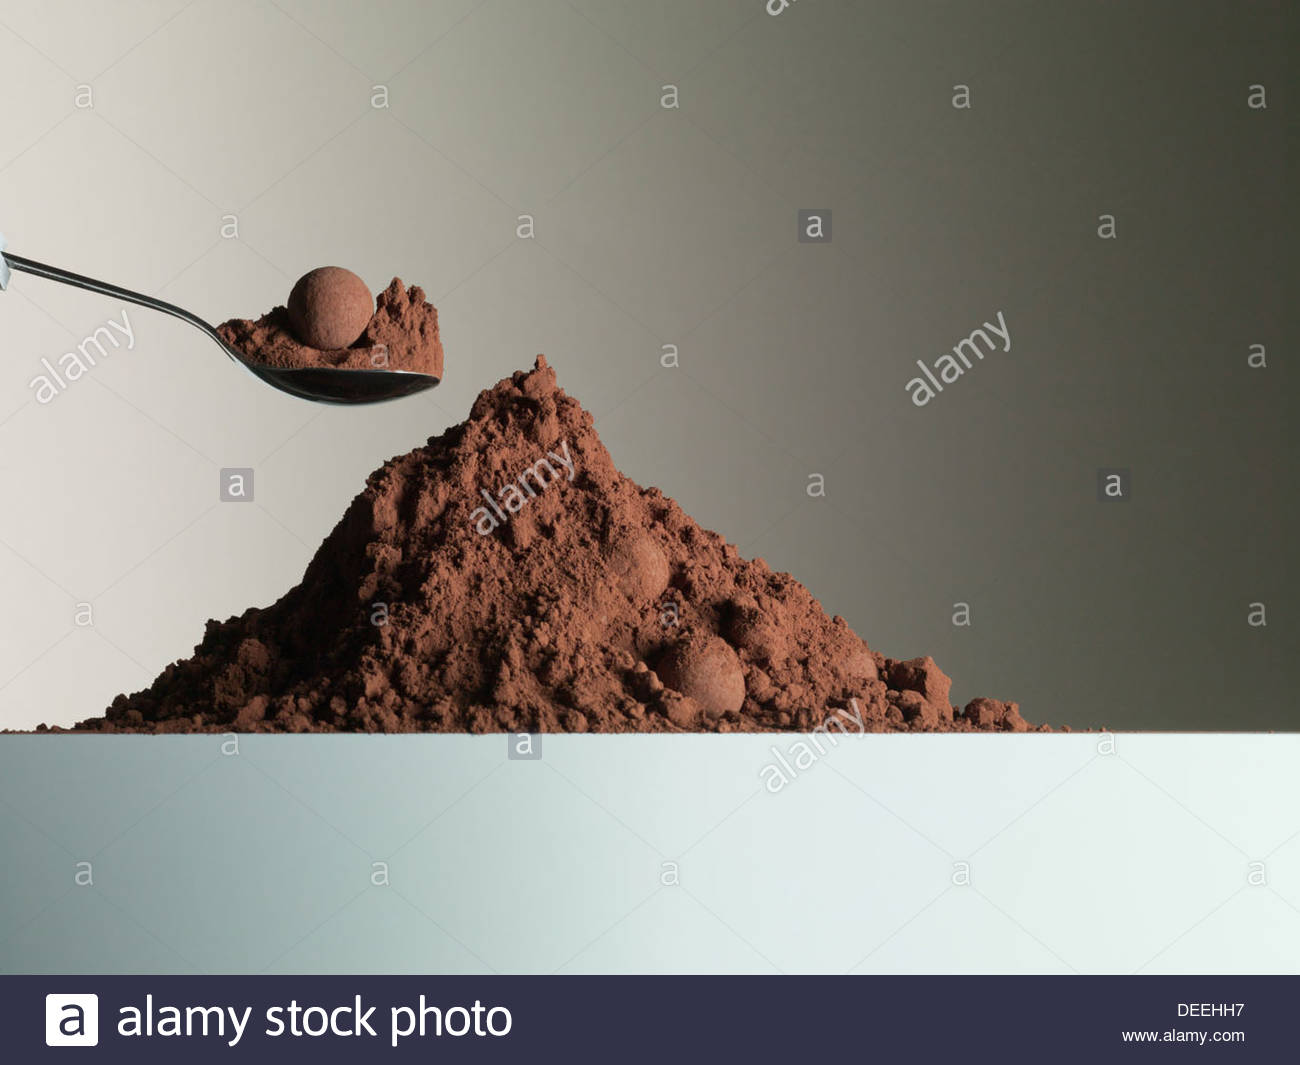 Spoon over heap of cocoa powder - Stock Image